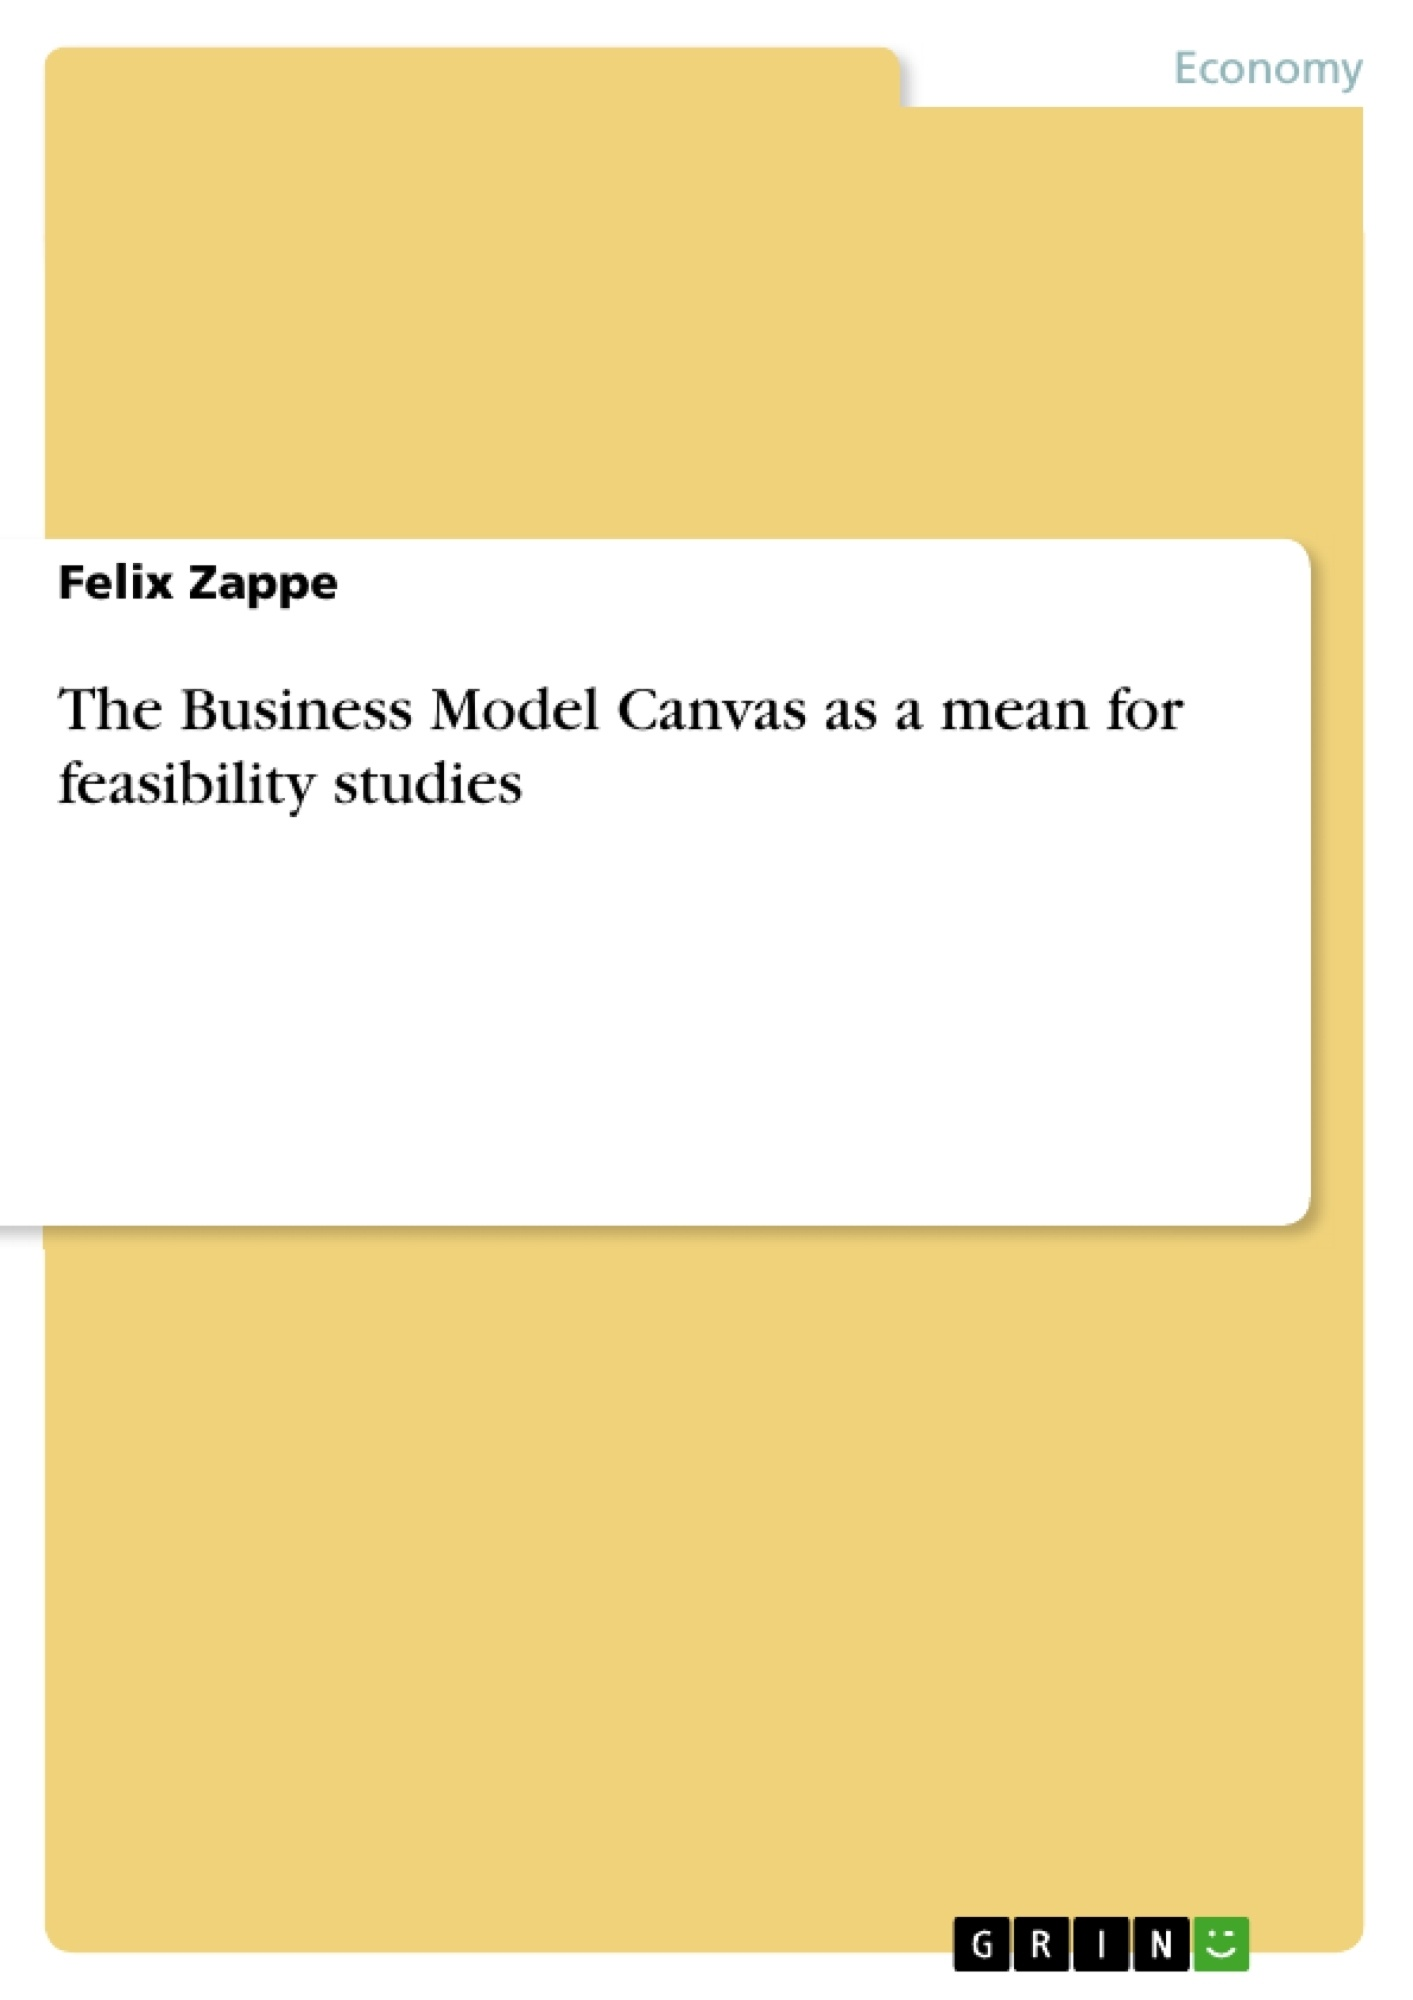 Title: The Business Model Canvas as a mean for feasibility studies